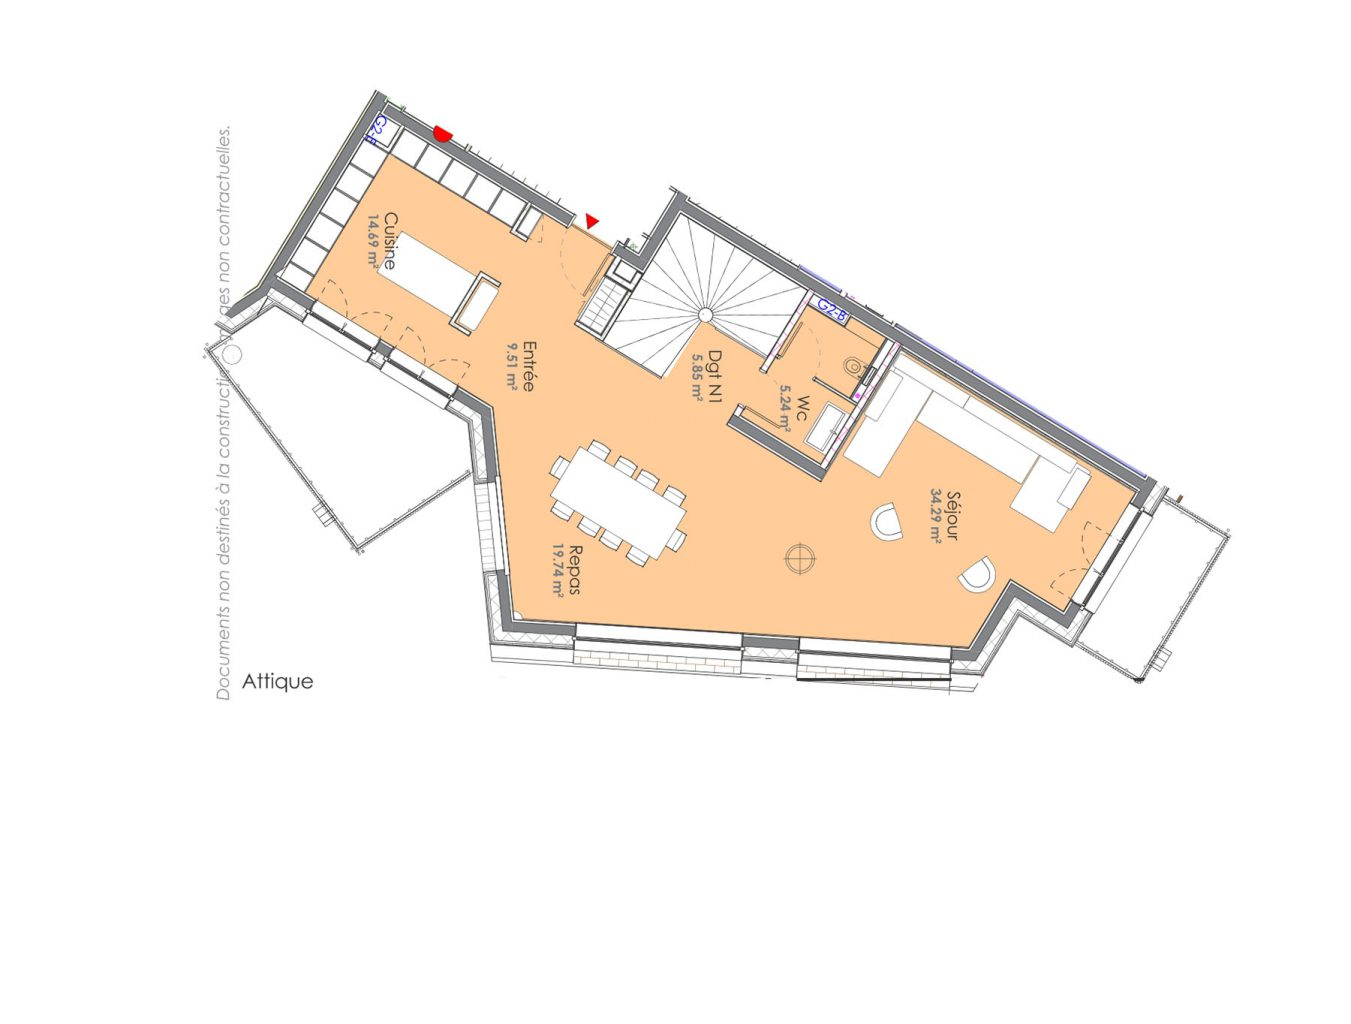 Chalet Aspen Appts Floor plan 1